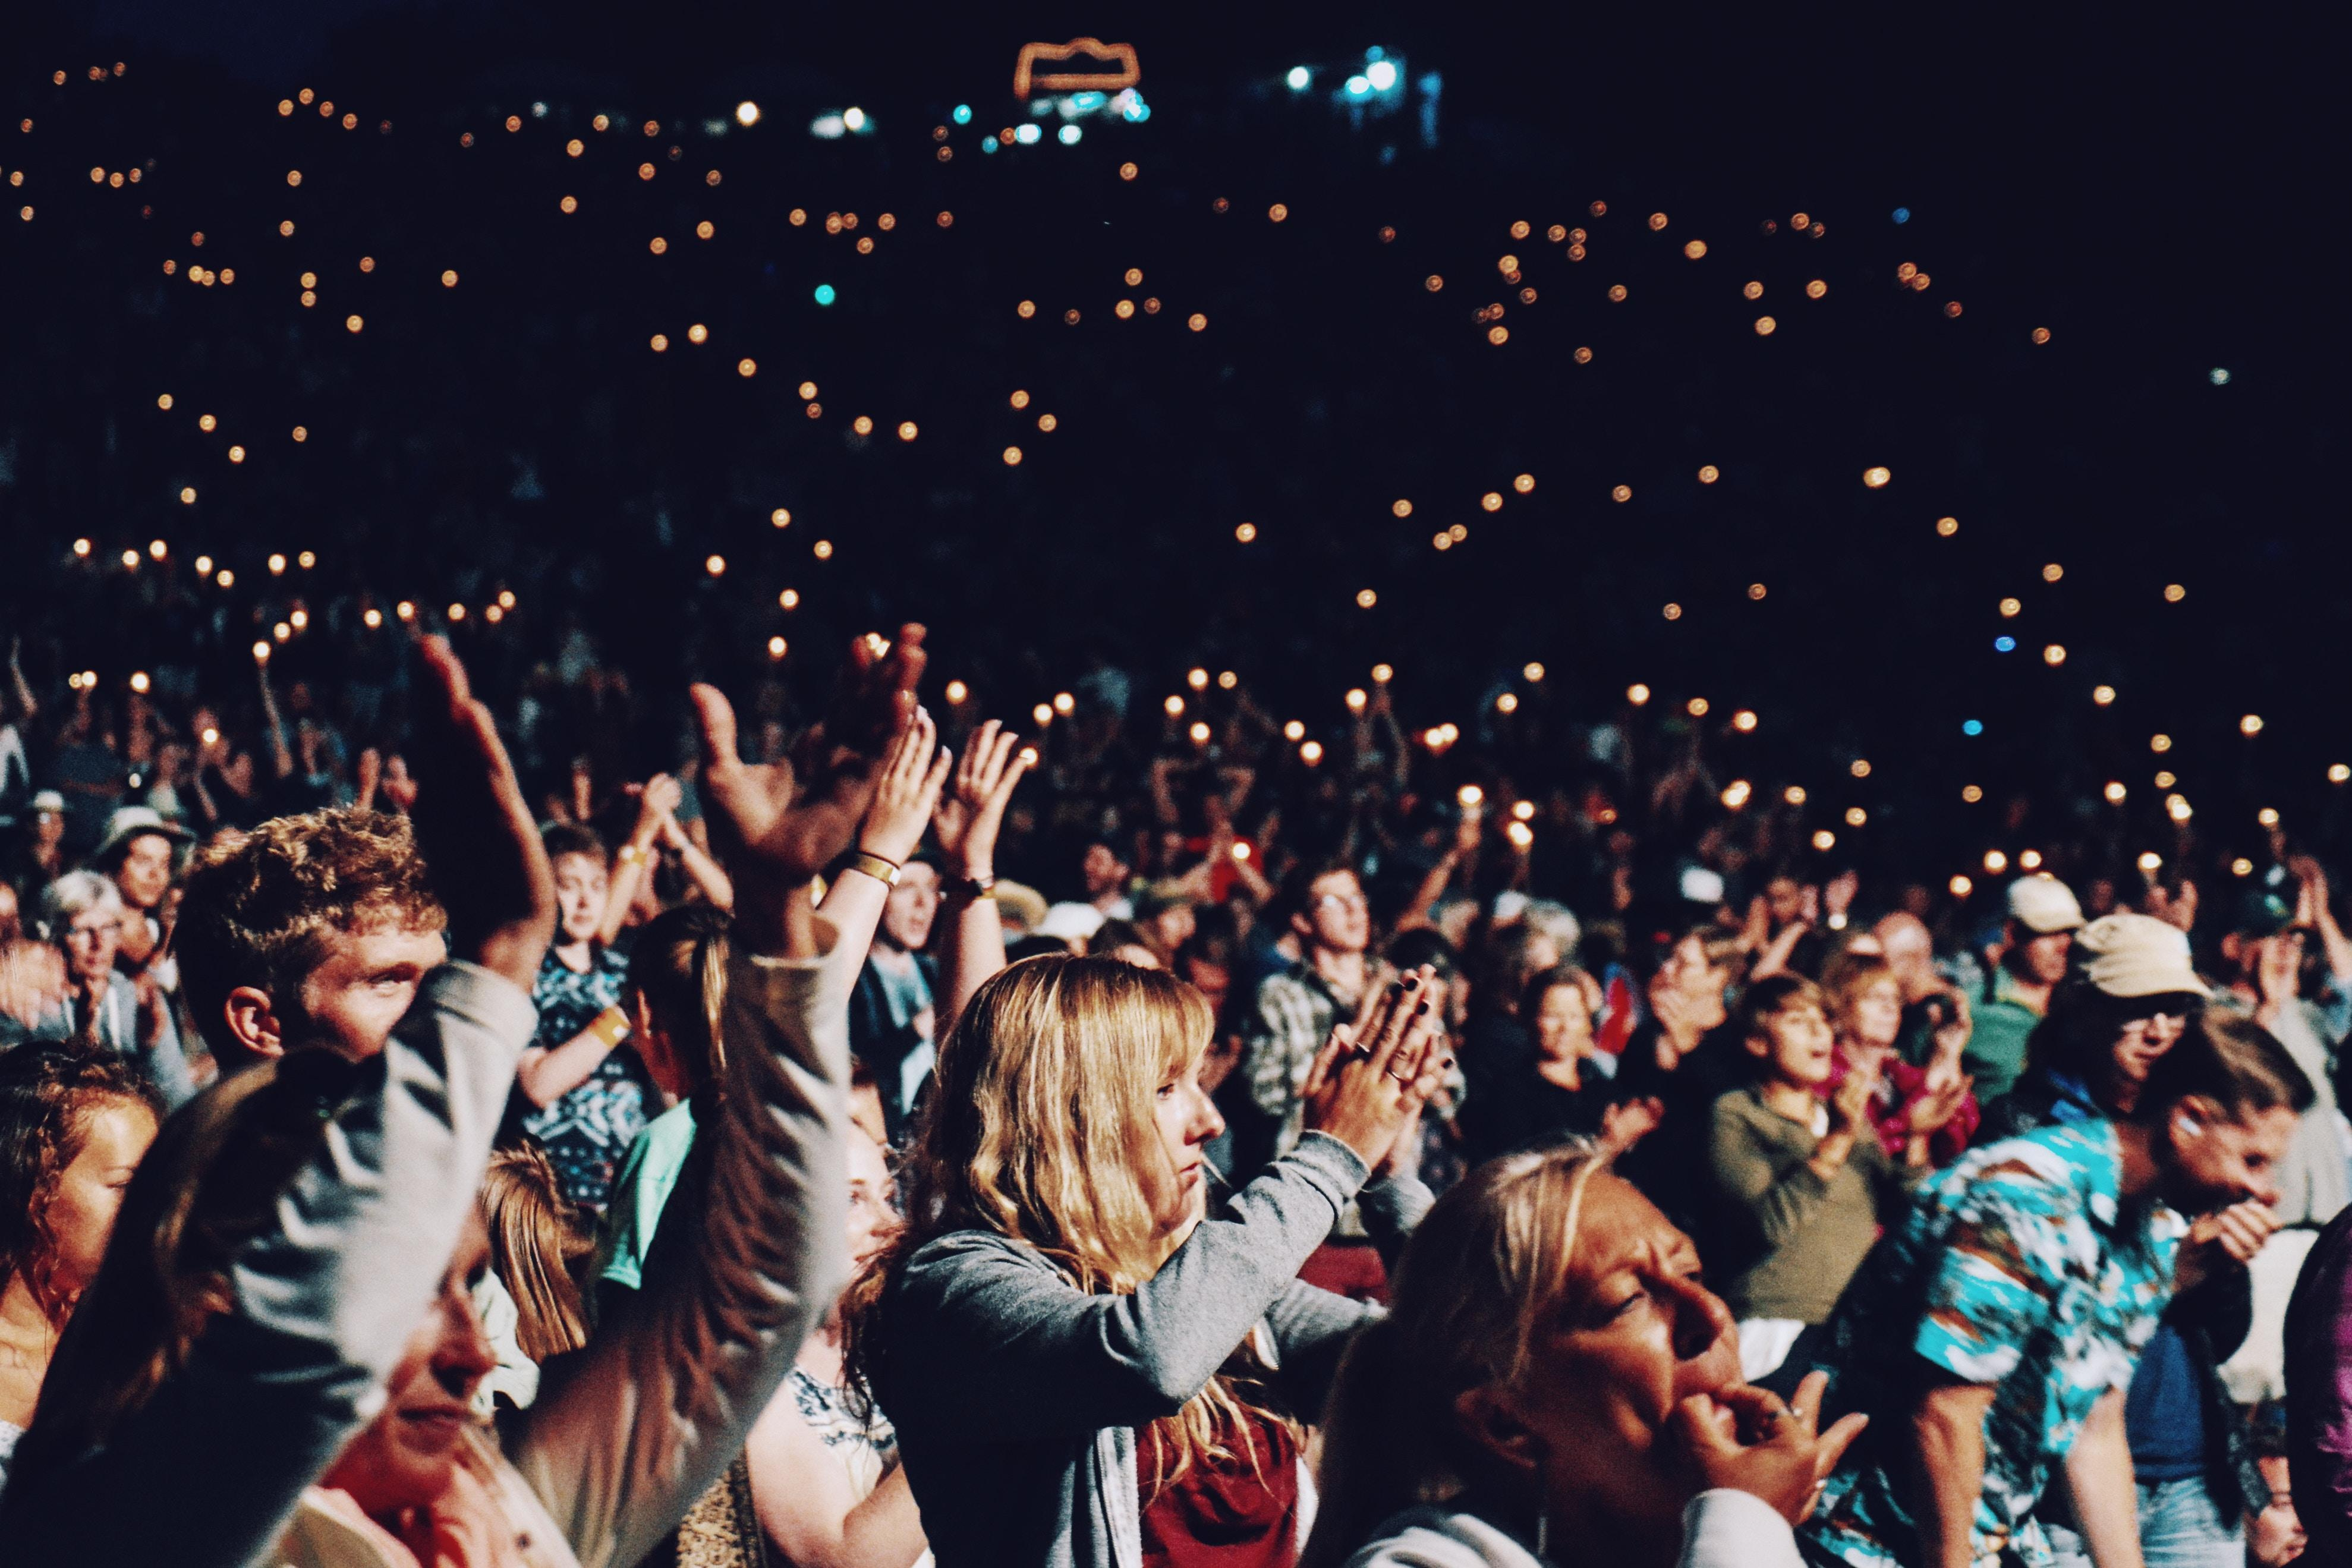 Hundreds of people at a concert at night, lights in the background